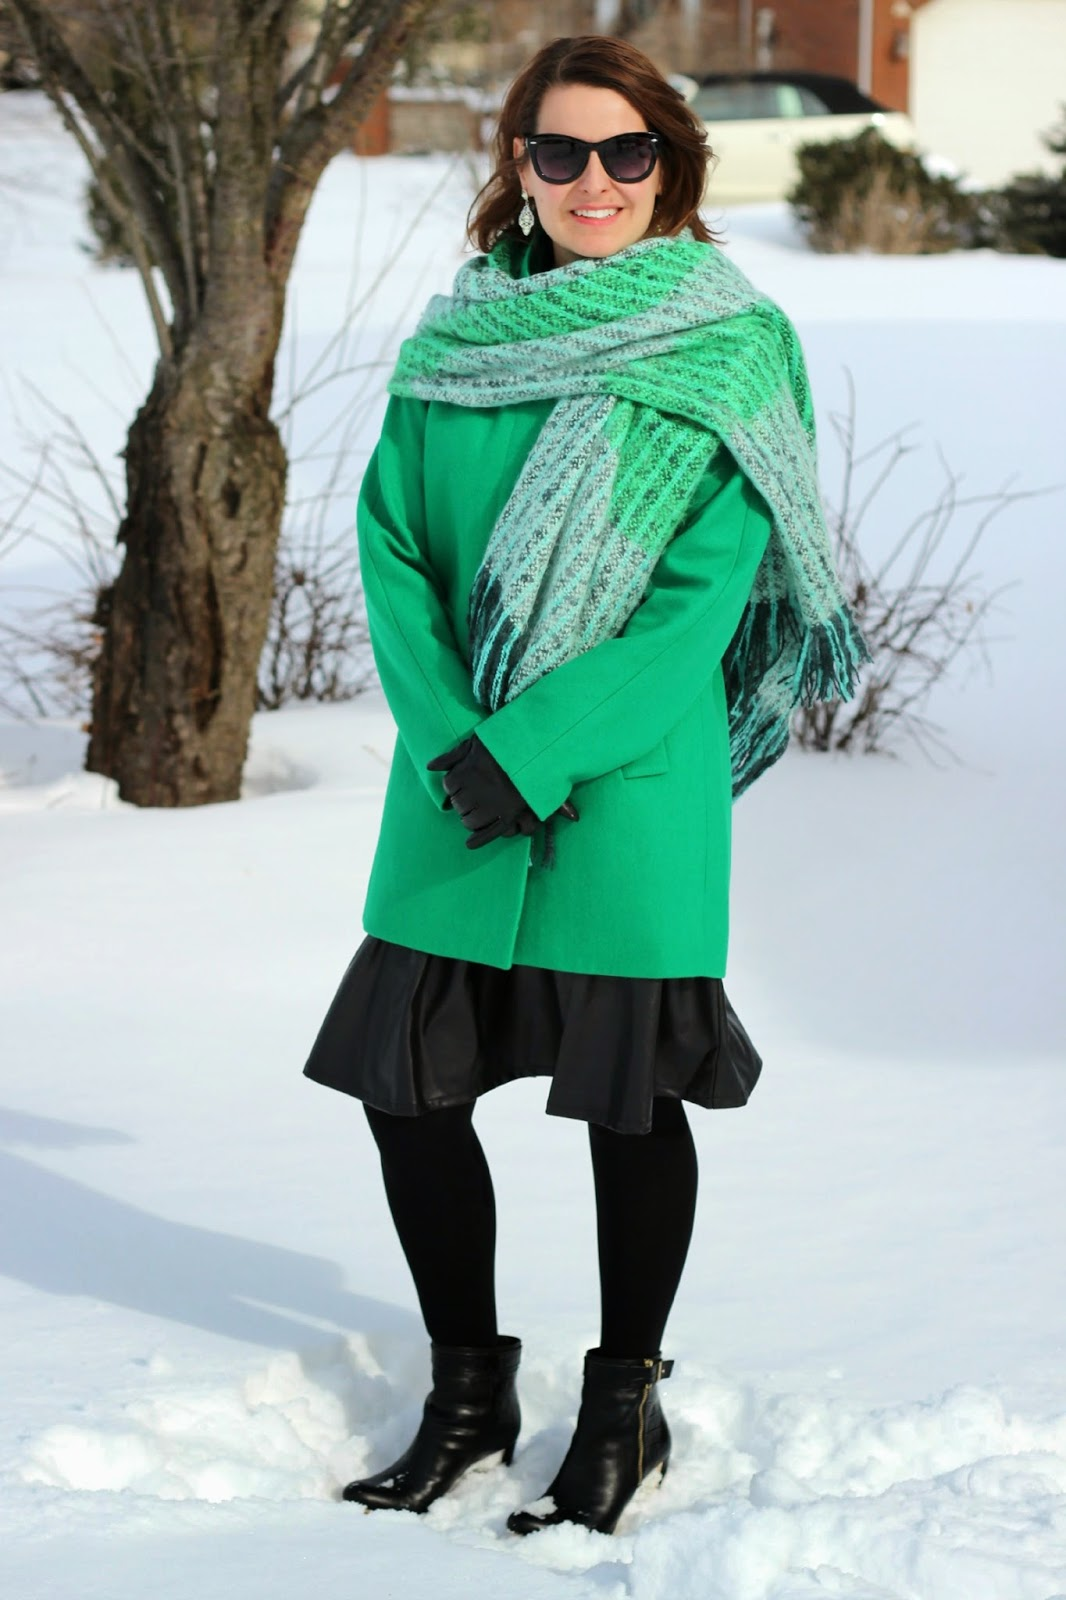 J crew Kelly green coat, green blanket scarf, black faux leather skirt, Black booties, winter outfit, winter look